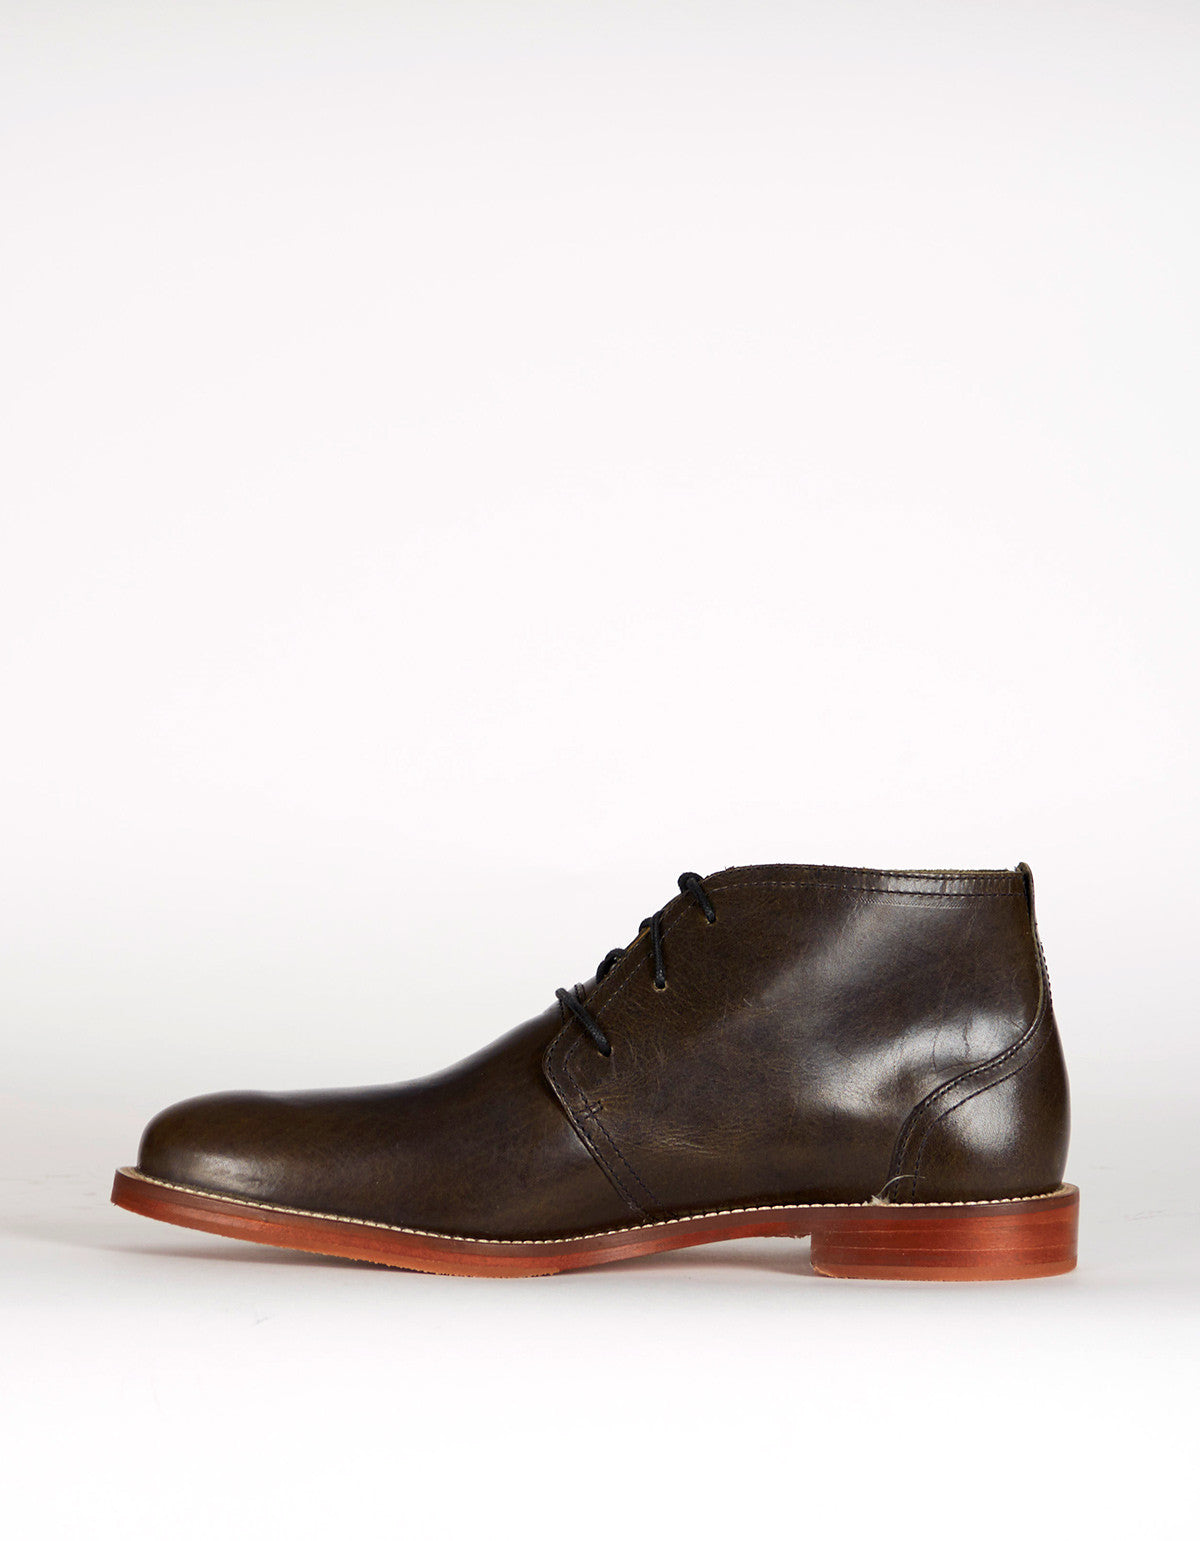 J Shoes Monarch Chukka Boot Black - Still Life - 2